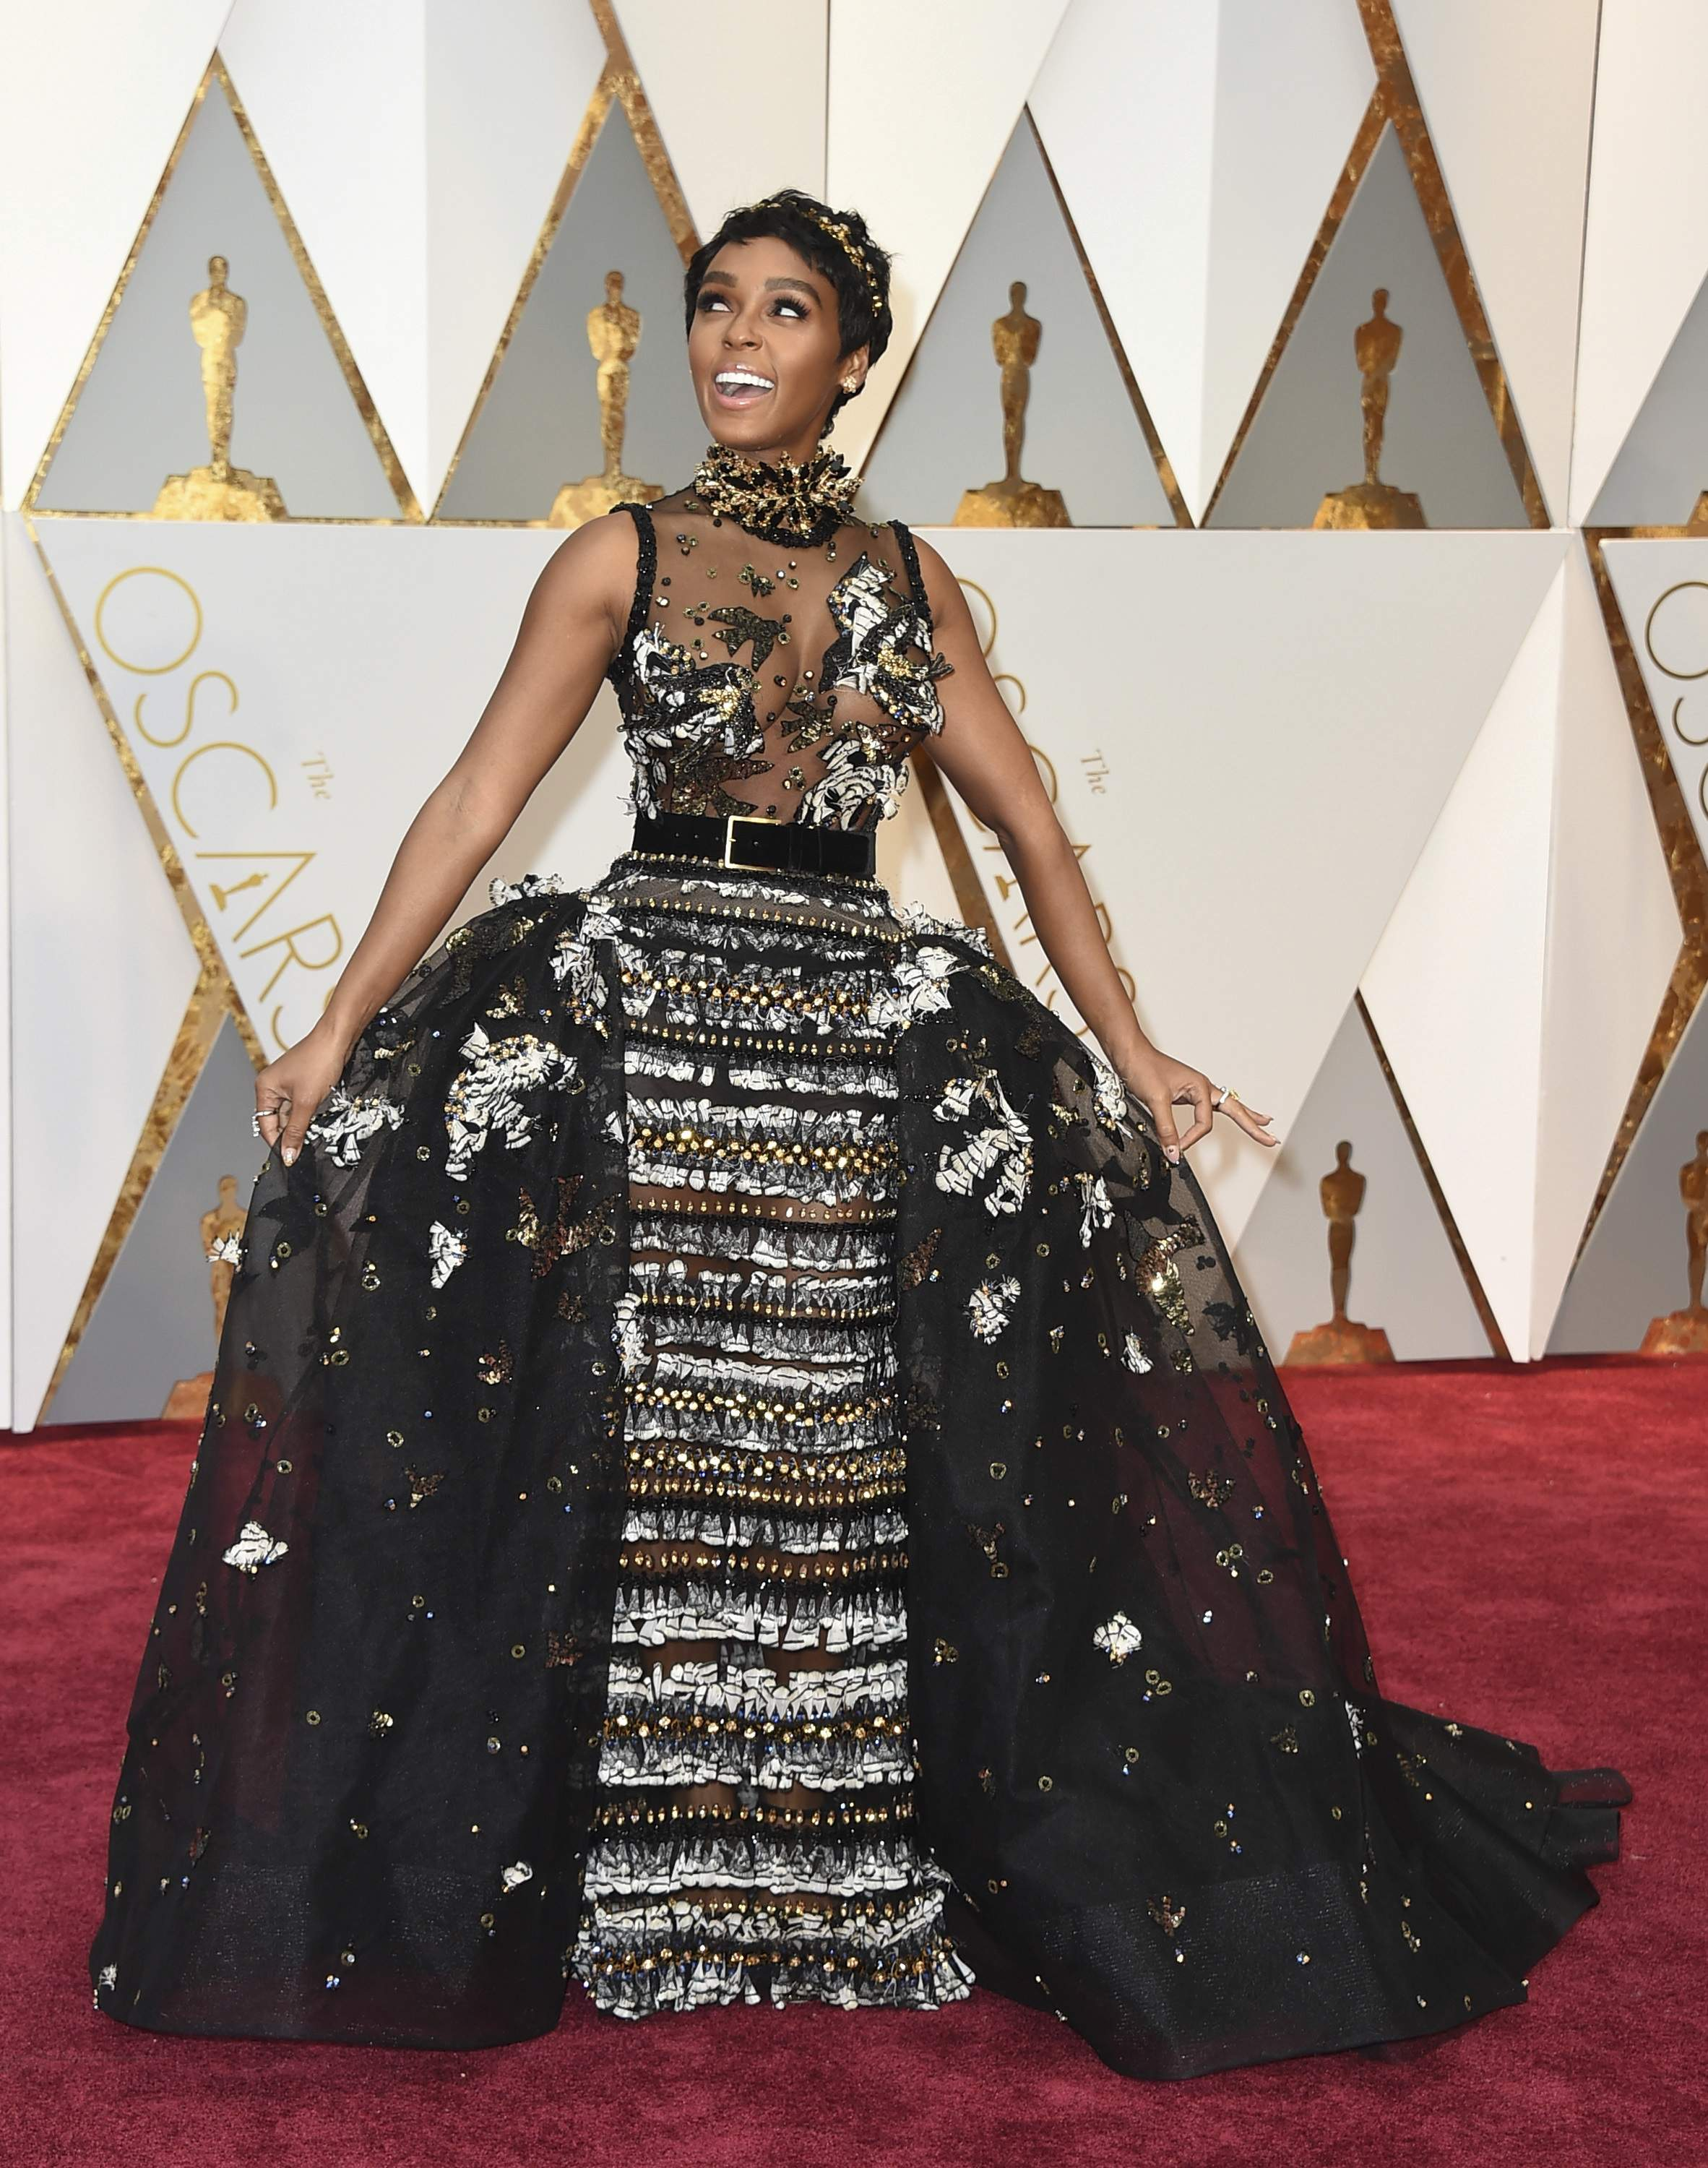 Janelle Monae arrives at the Oscars on Sunday, Feb. 26, 2017, at the Dolby Theatre in Los Angeles. THE ASSOCIATED PRESS